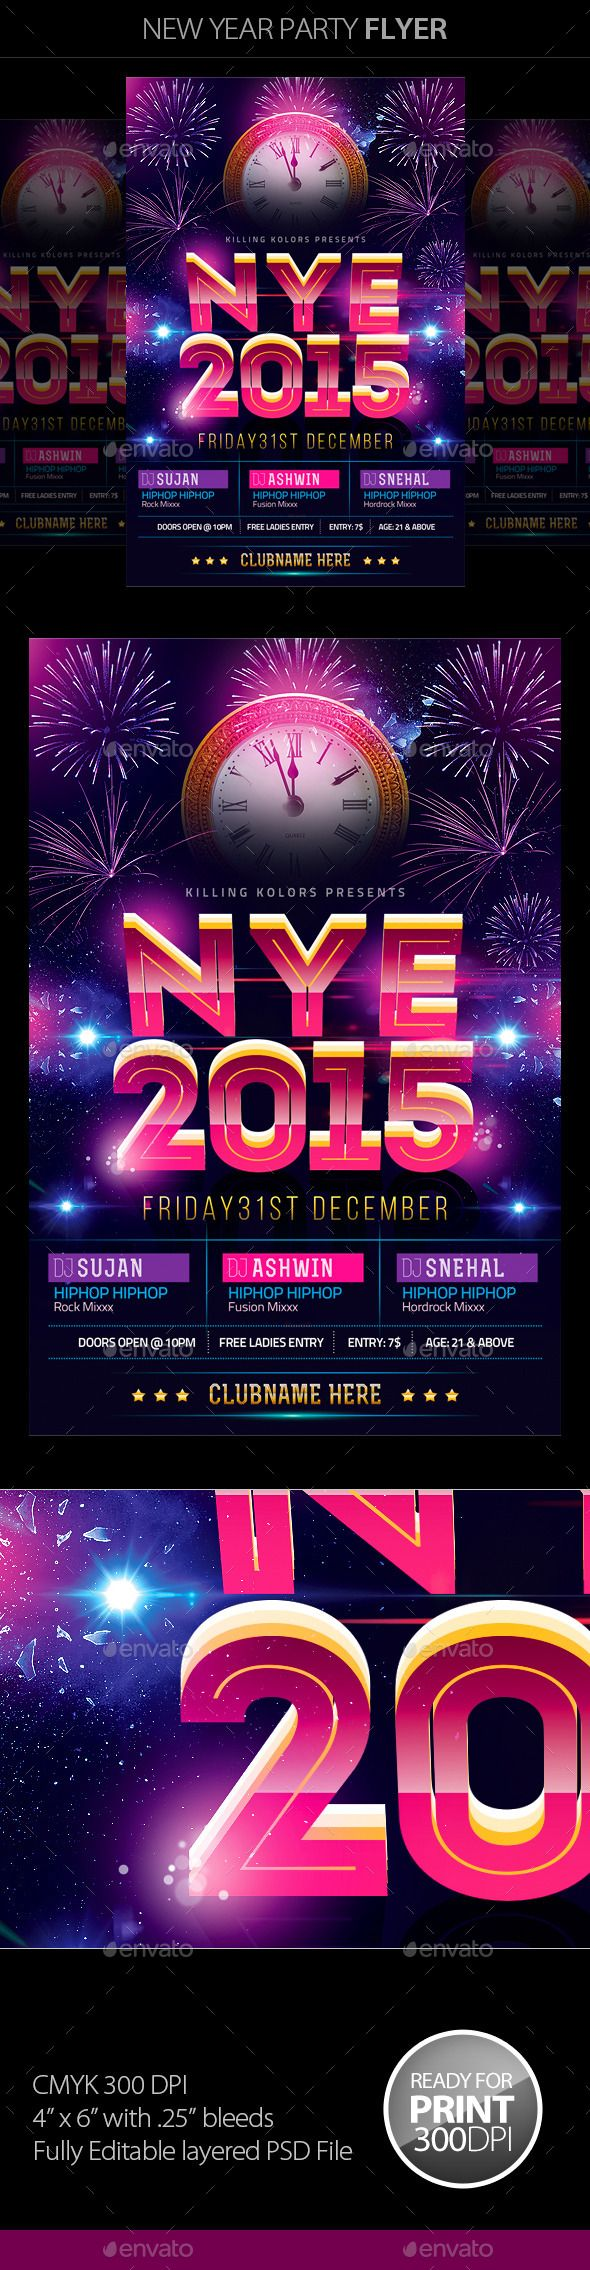 hip hop party new year poster